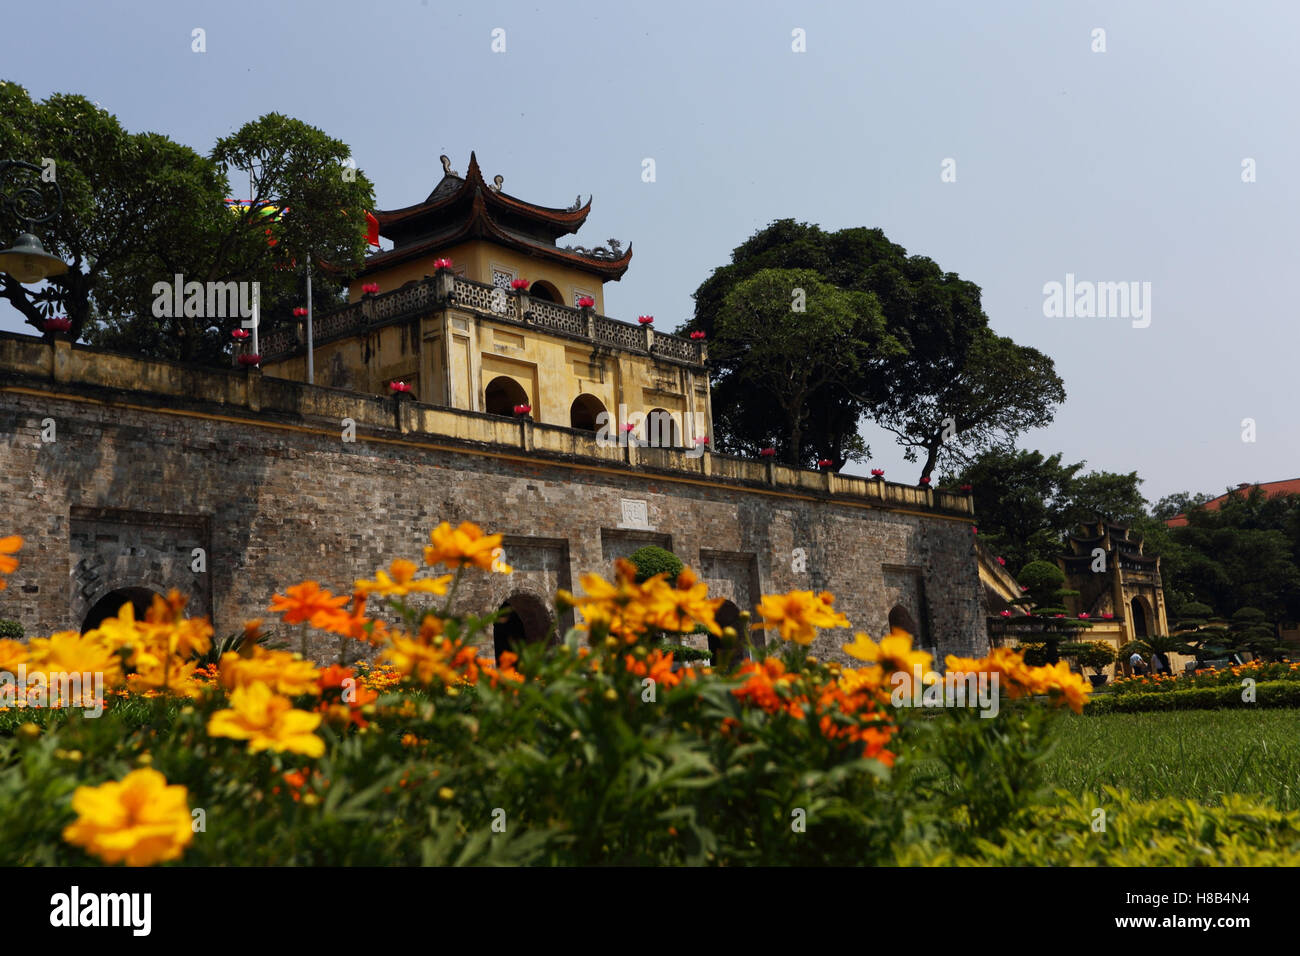 Imperial Citadel Of Thang Long Stock Photos & Imperial Citadel Of ...